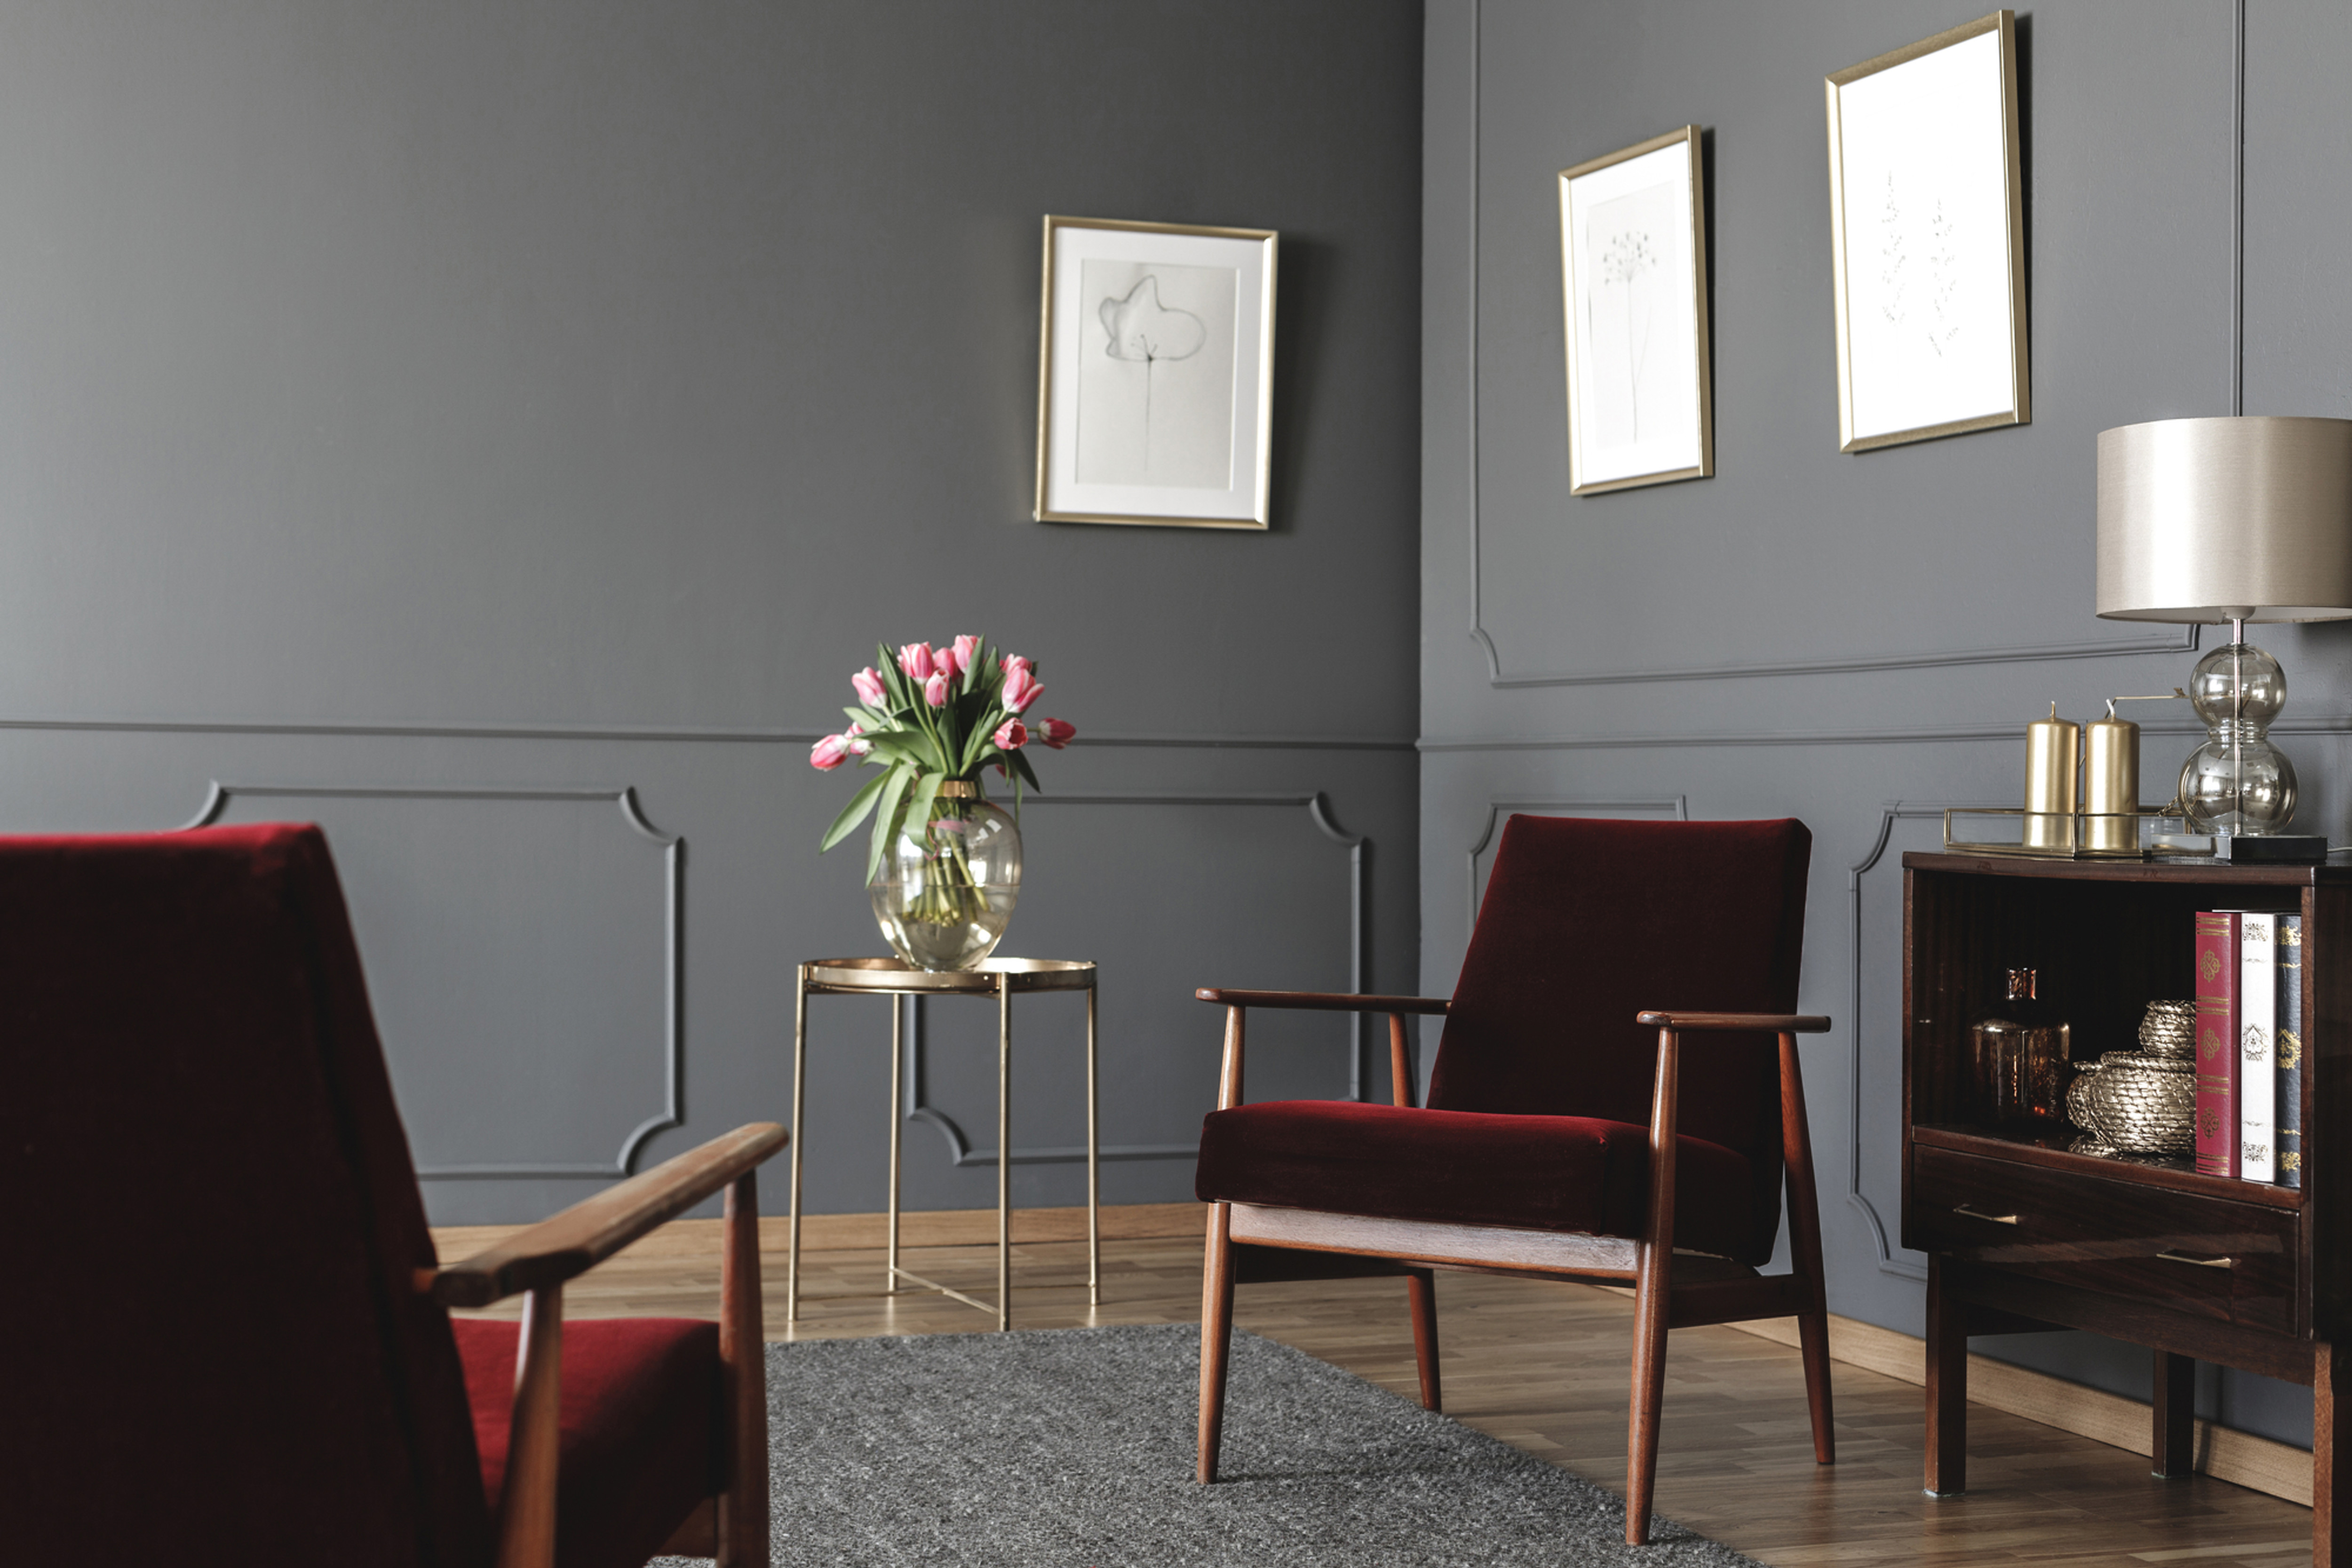 London Therapy Room